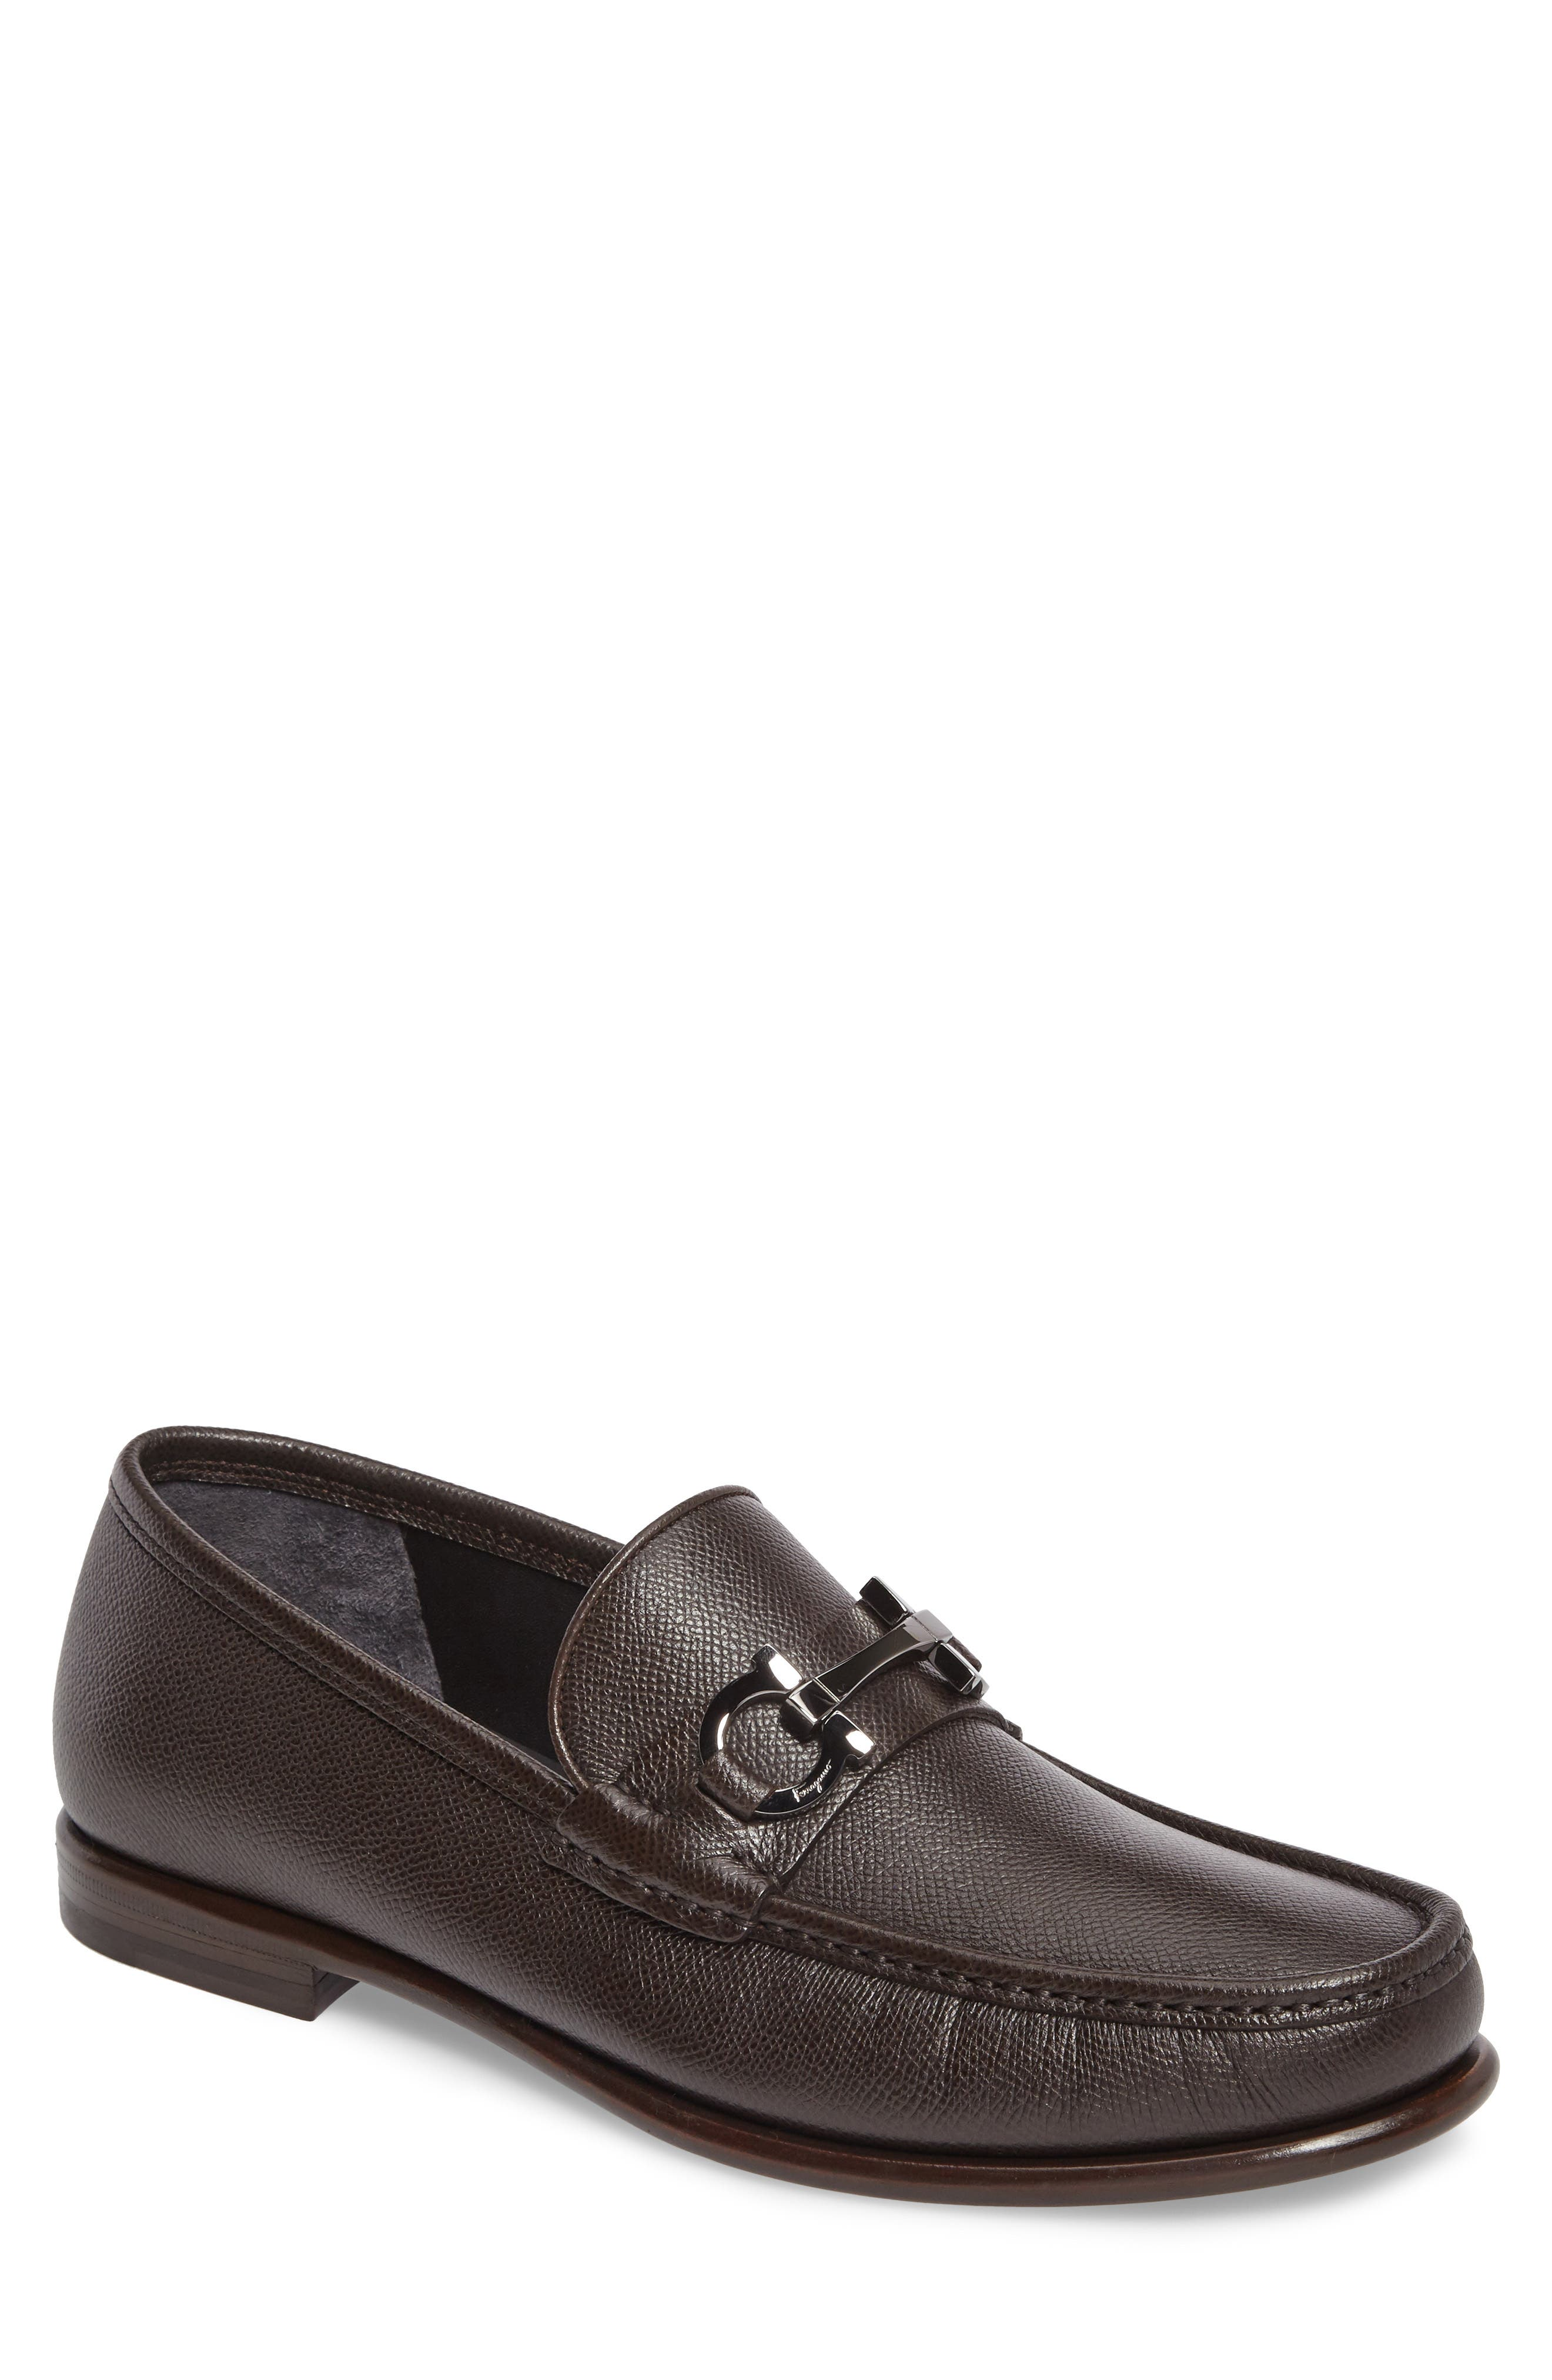 Crown Bit Loafer,                             Main thumbnail 1, color,                             T.Moro